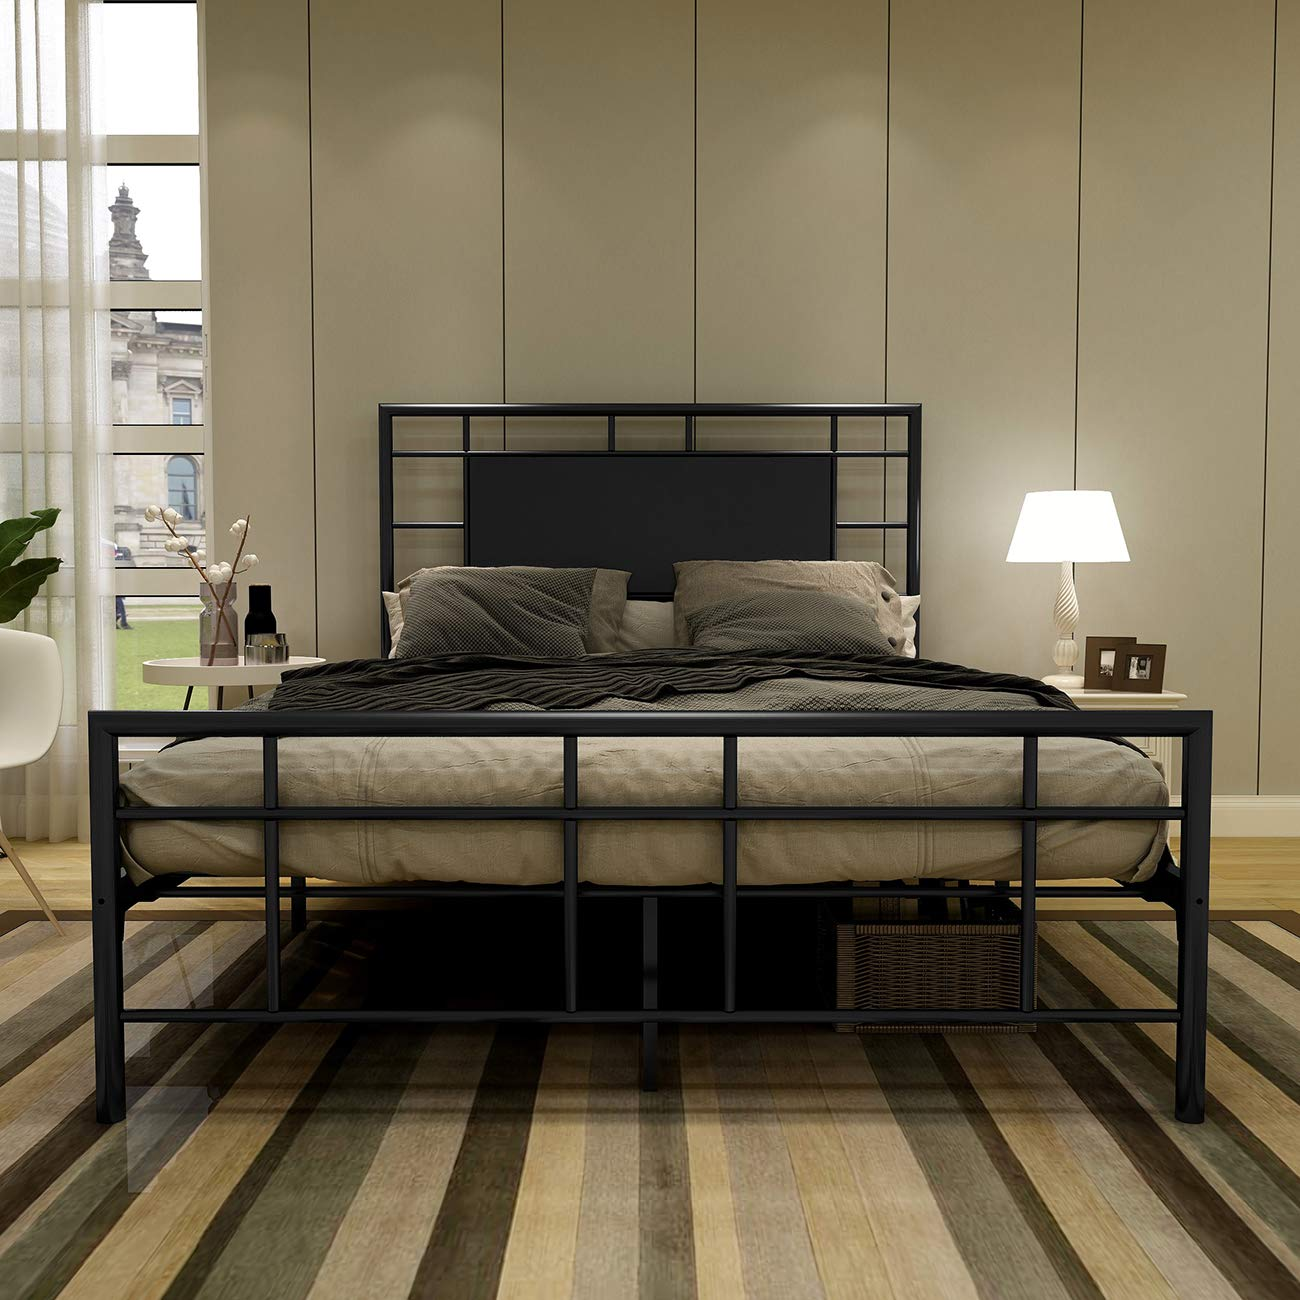 Metal Bed Frame Full with Part Faux Leather Headboard Modern Classic Premium Steel Slat No Box Spring Mattress Foundation Black by AUFANK